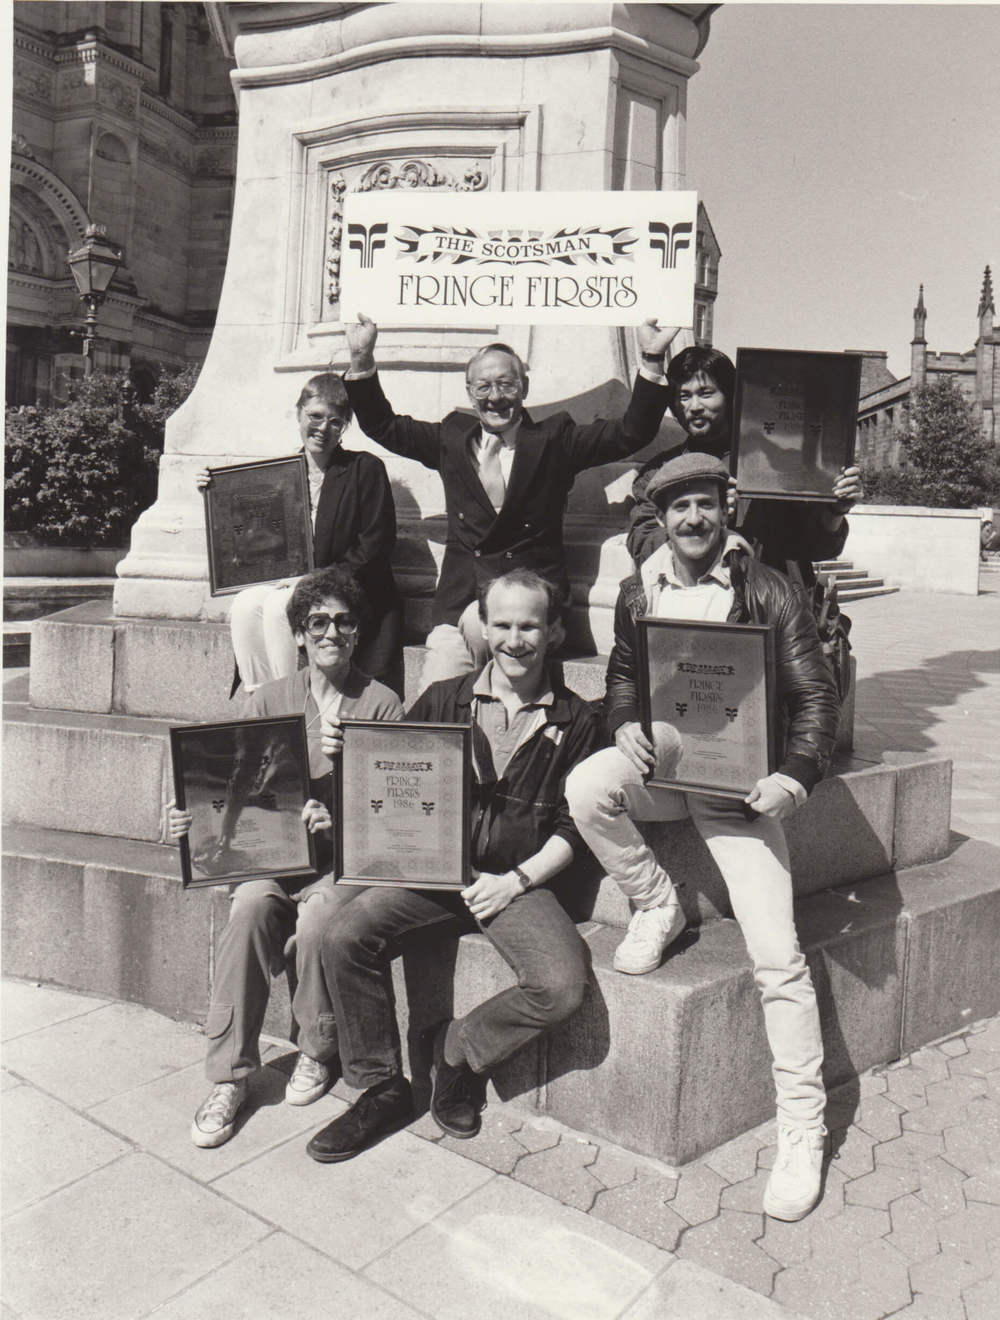 BRIGHTON THEATRE with awards, 1986